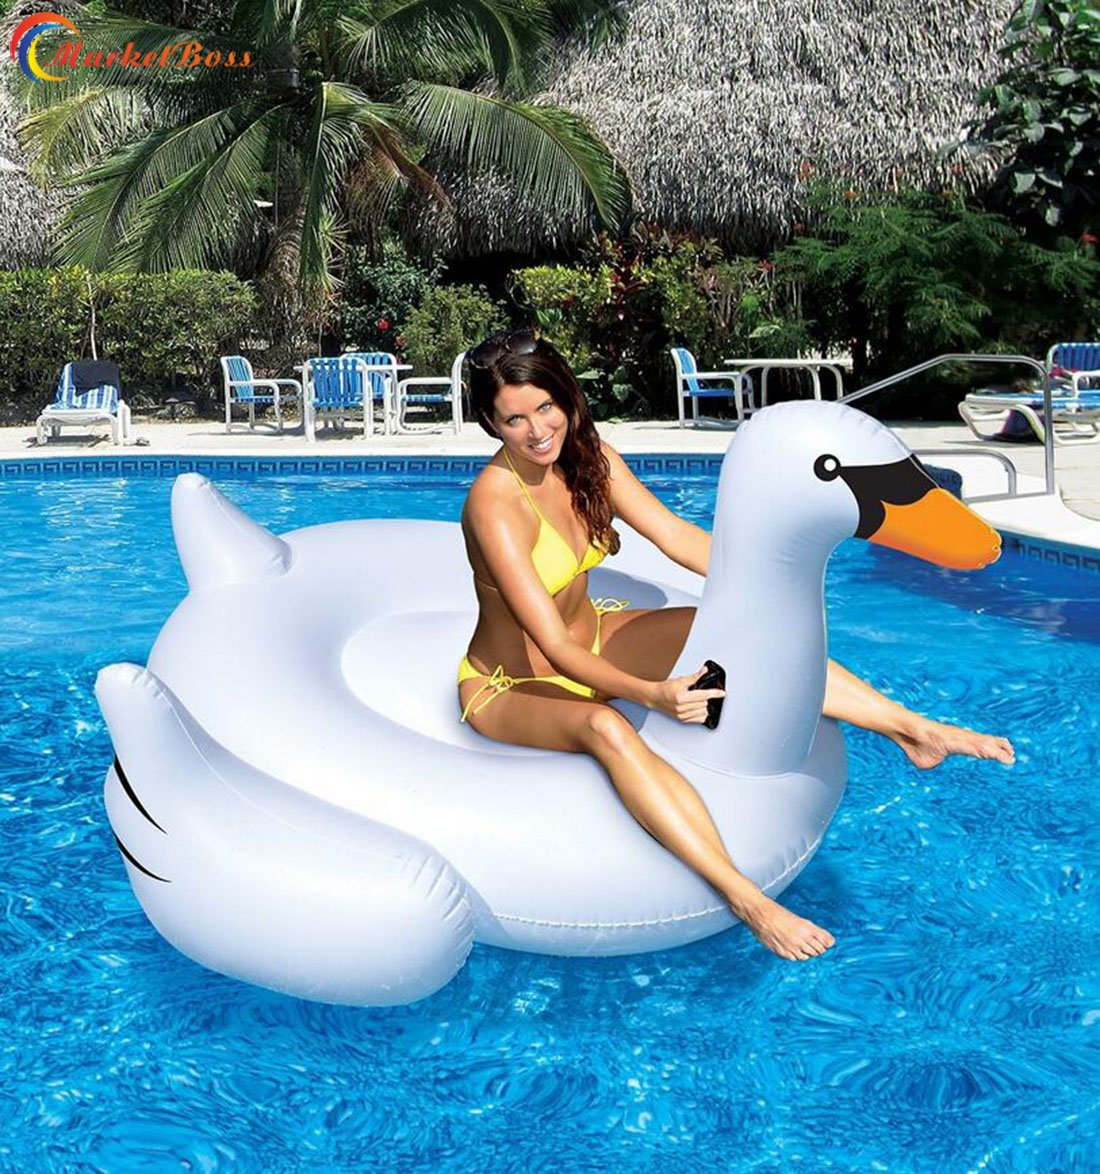 MarketBoss Rideable Giant Inflatable Swan Raft Swimming Pool Float with Energy-saving Handles Adults Kids Summer Fun Pool Toy for Water sports 59''